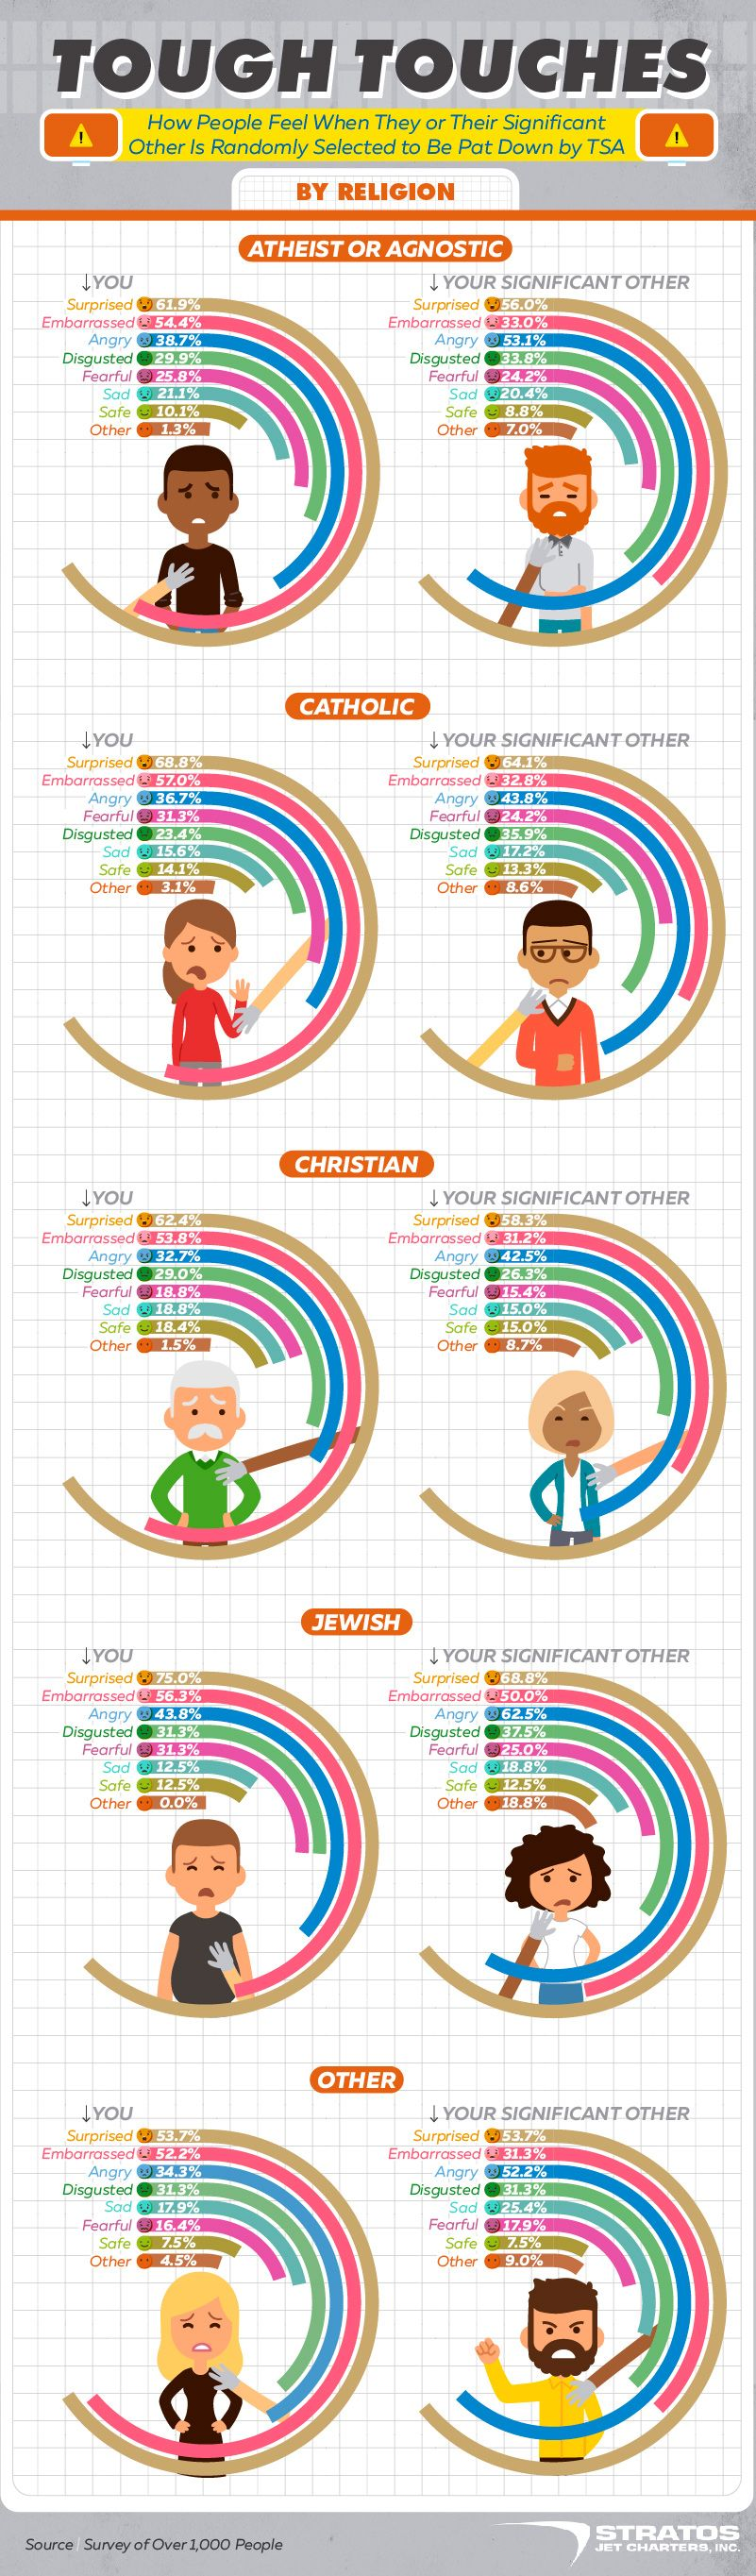 How people feel when their partner is touched TSA religion infographic